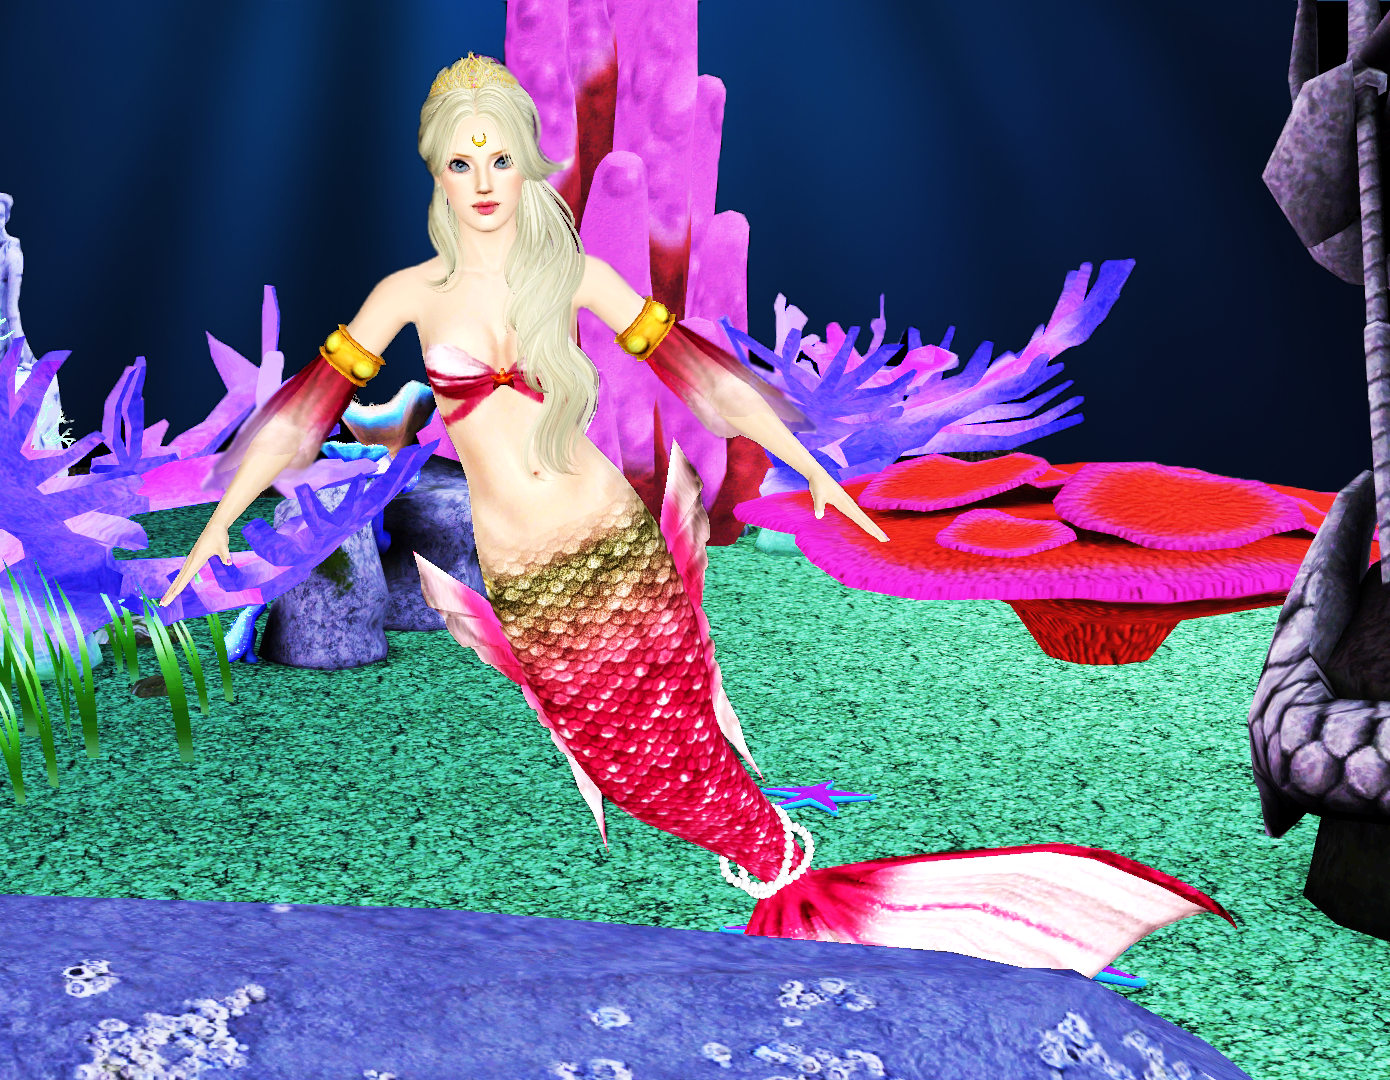 The sims 3 mermaid tail download hentai cute whore